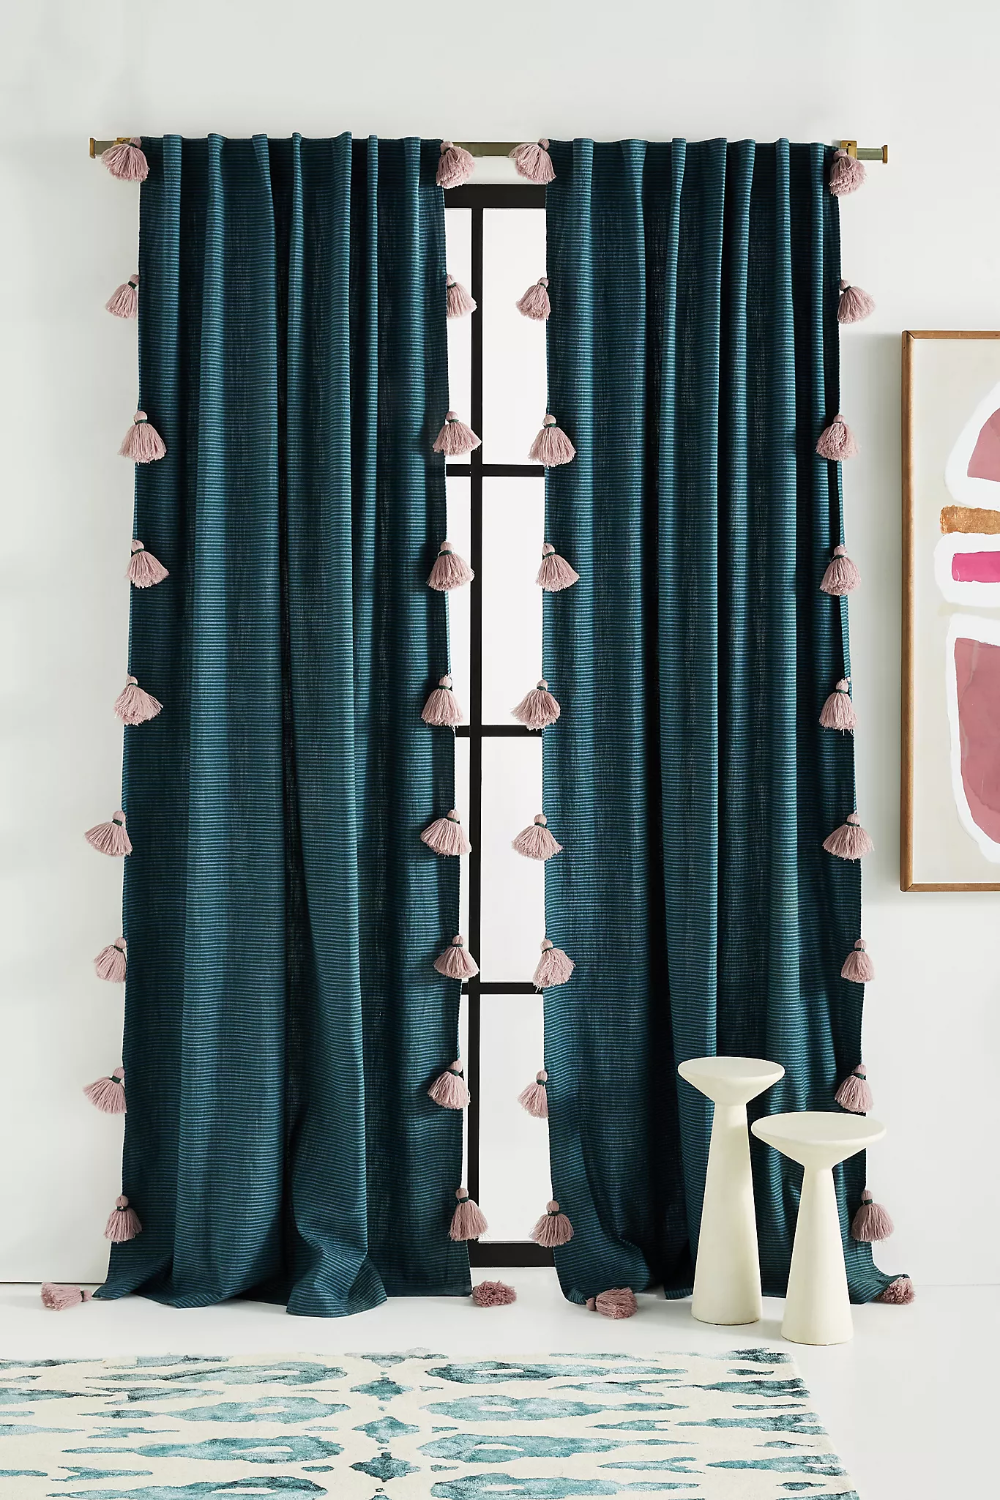 Mindra Curtain Anthropologie In 2020 Living Room Decor Curtains Home Curtains Curtains Living Room #teal #and #gray #curtains #living #room